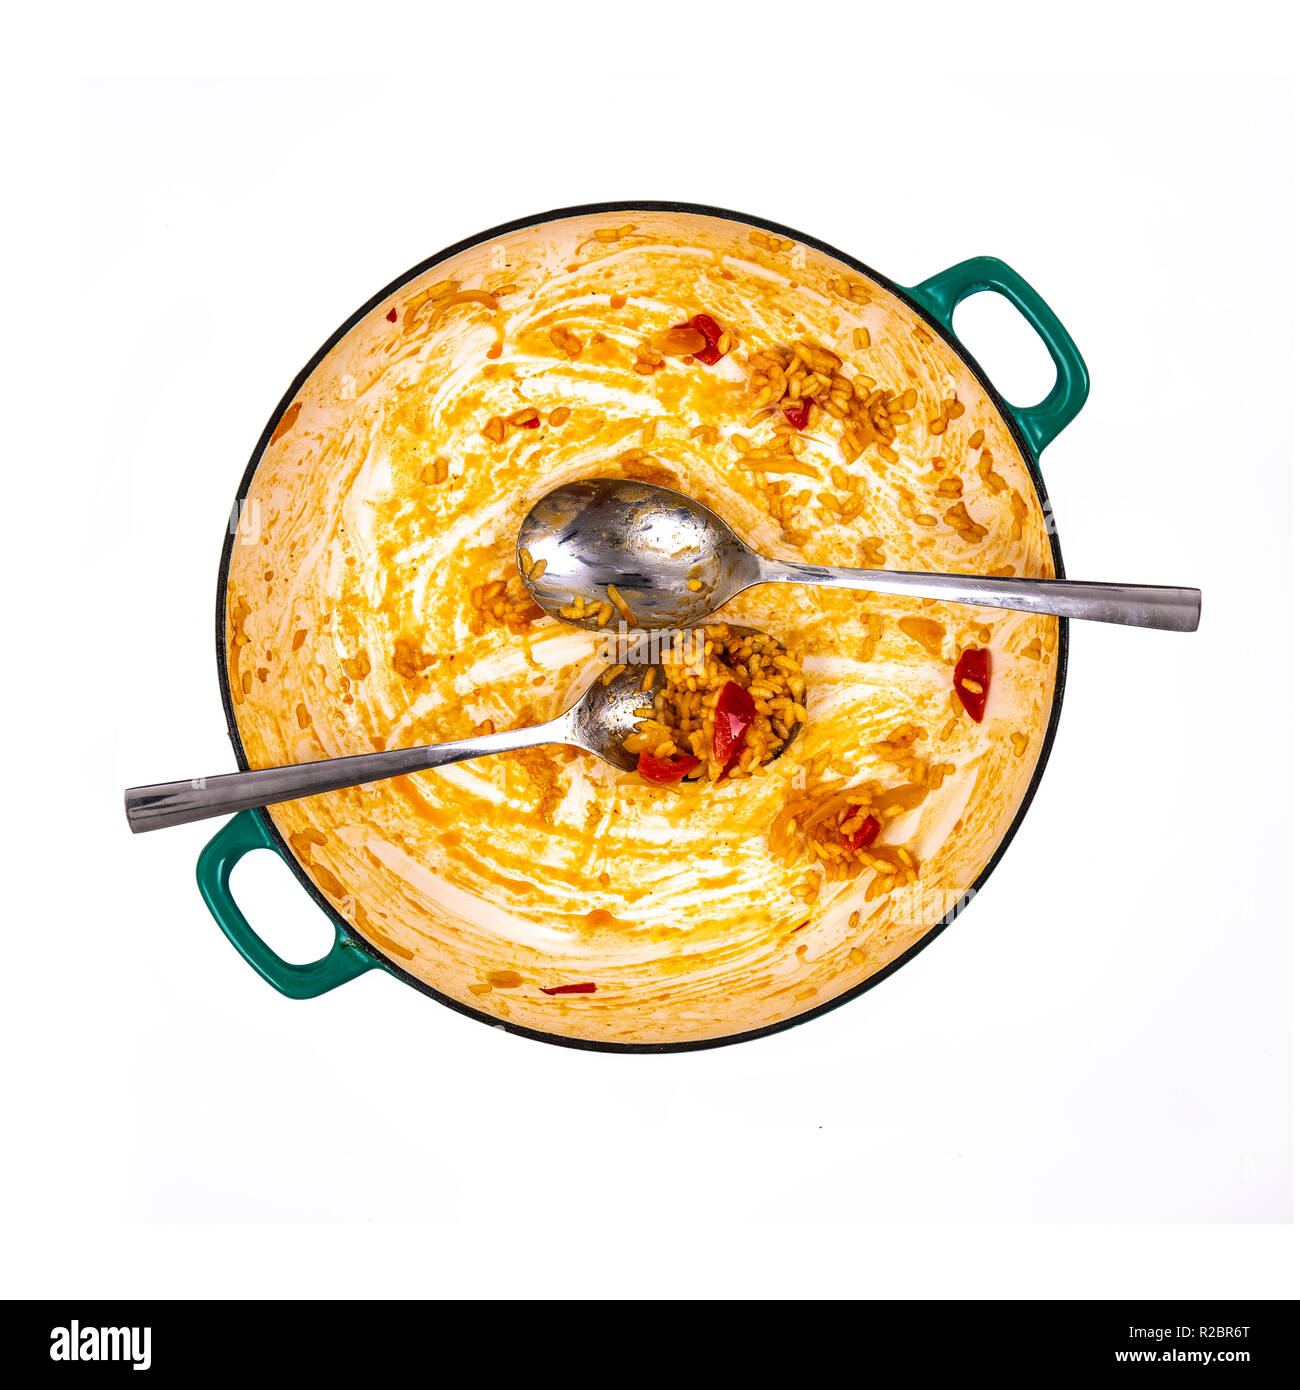 Pan of leftover Paella with spoons on a white background Stock Photo